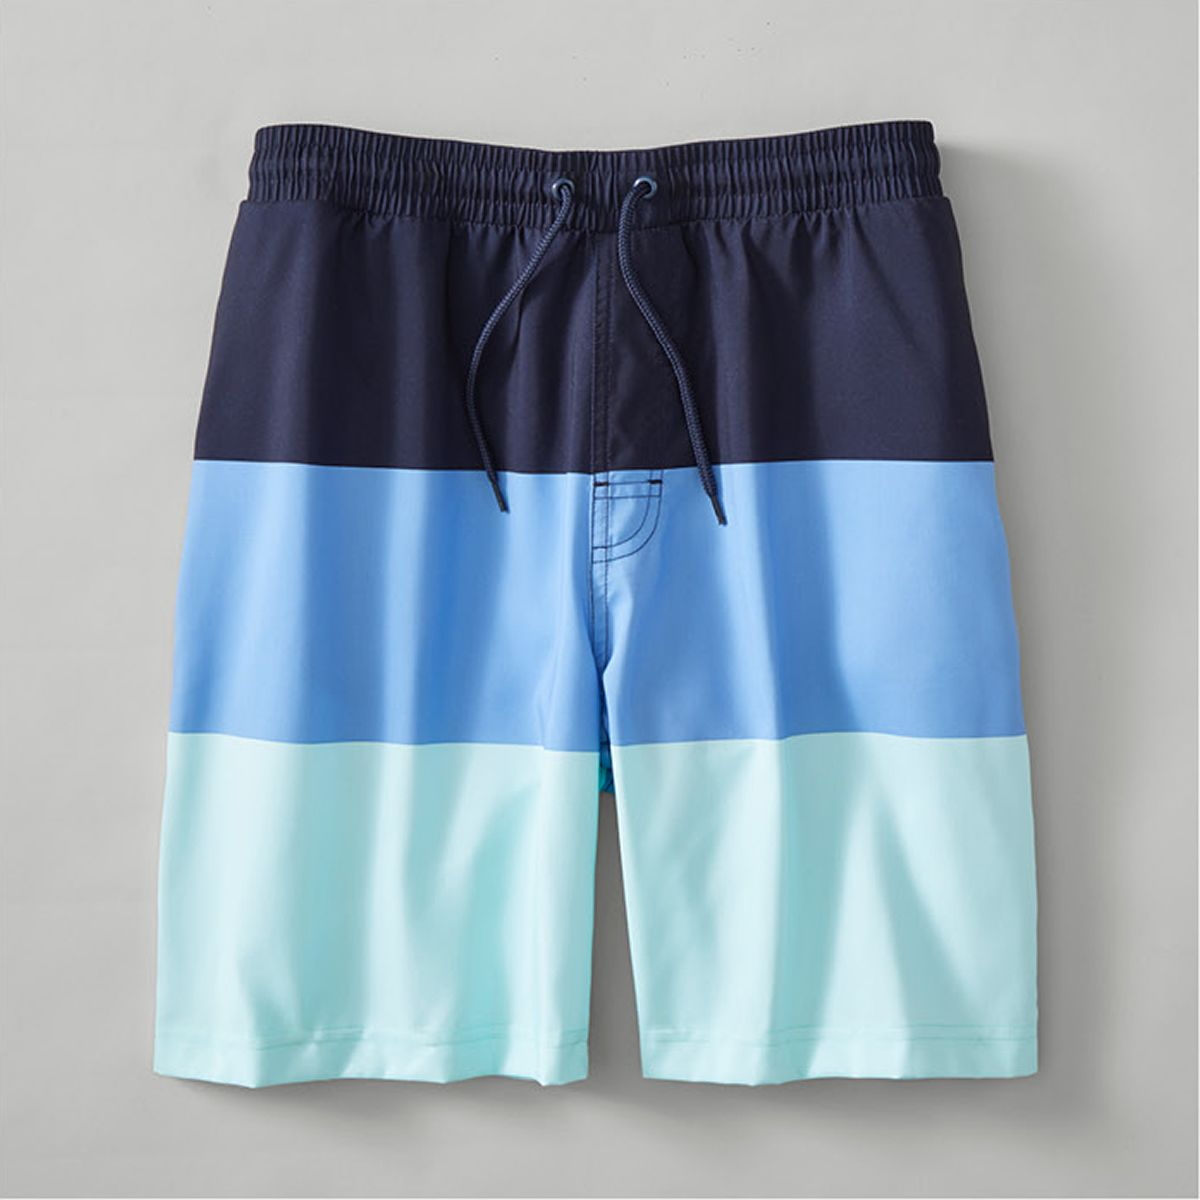 b3282c6e95 Swim Trunk Mens Swimwear & Men's Swim Trunks - Macy's